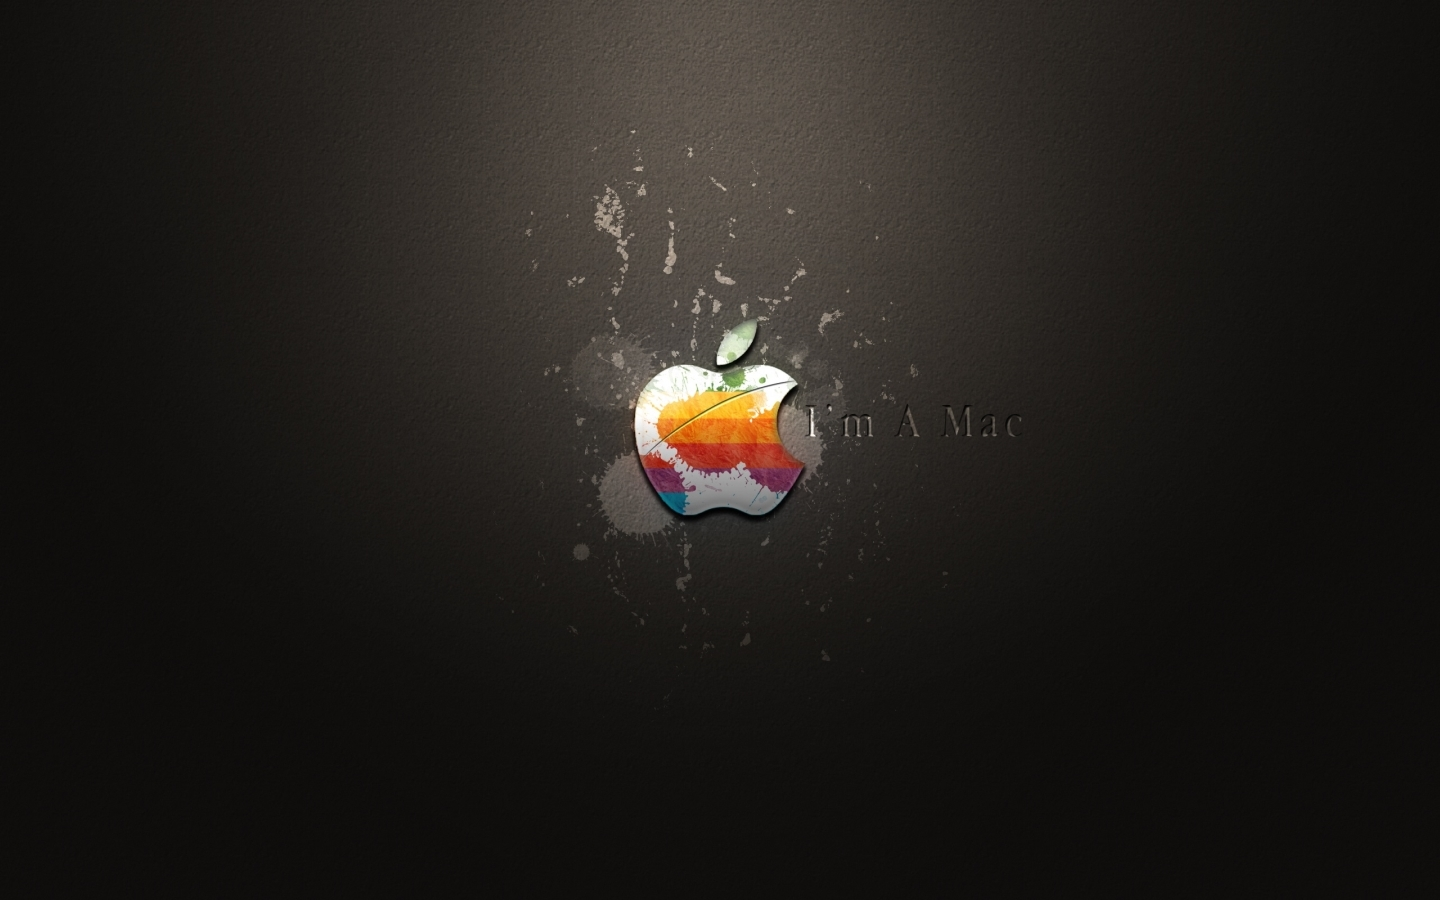 Macbook Air 11 Inch Wallpaper